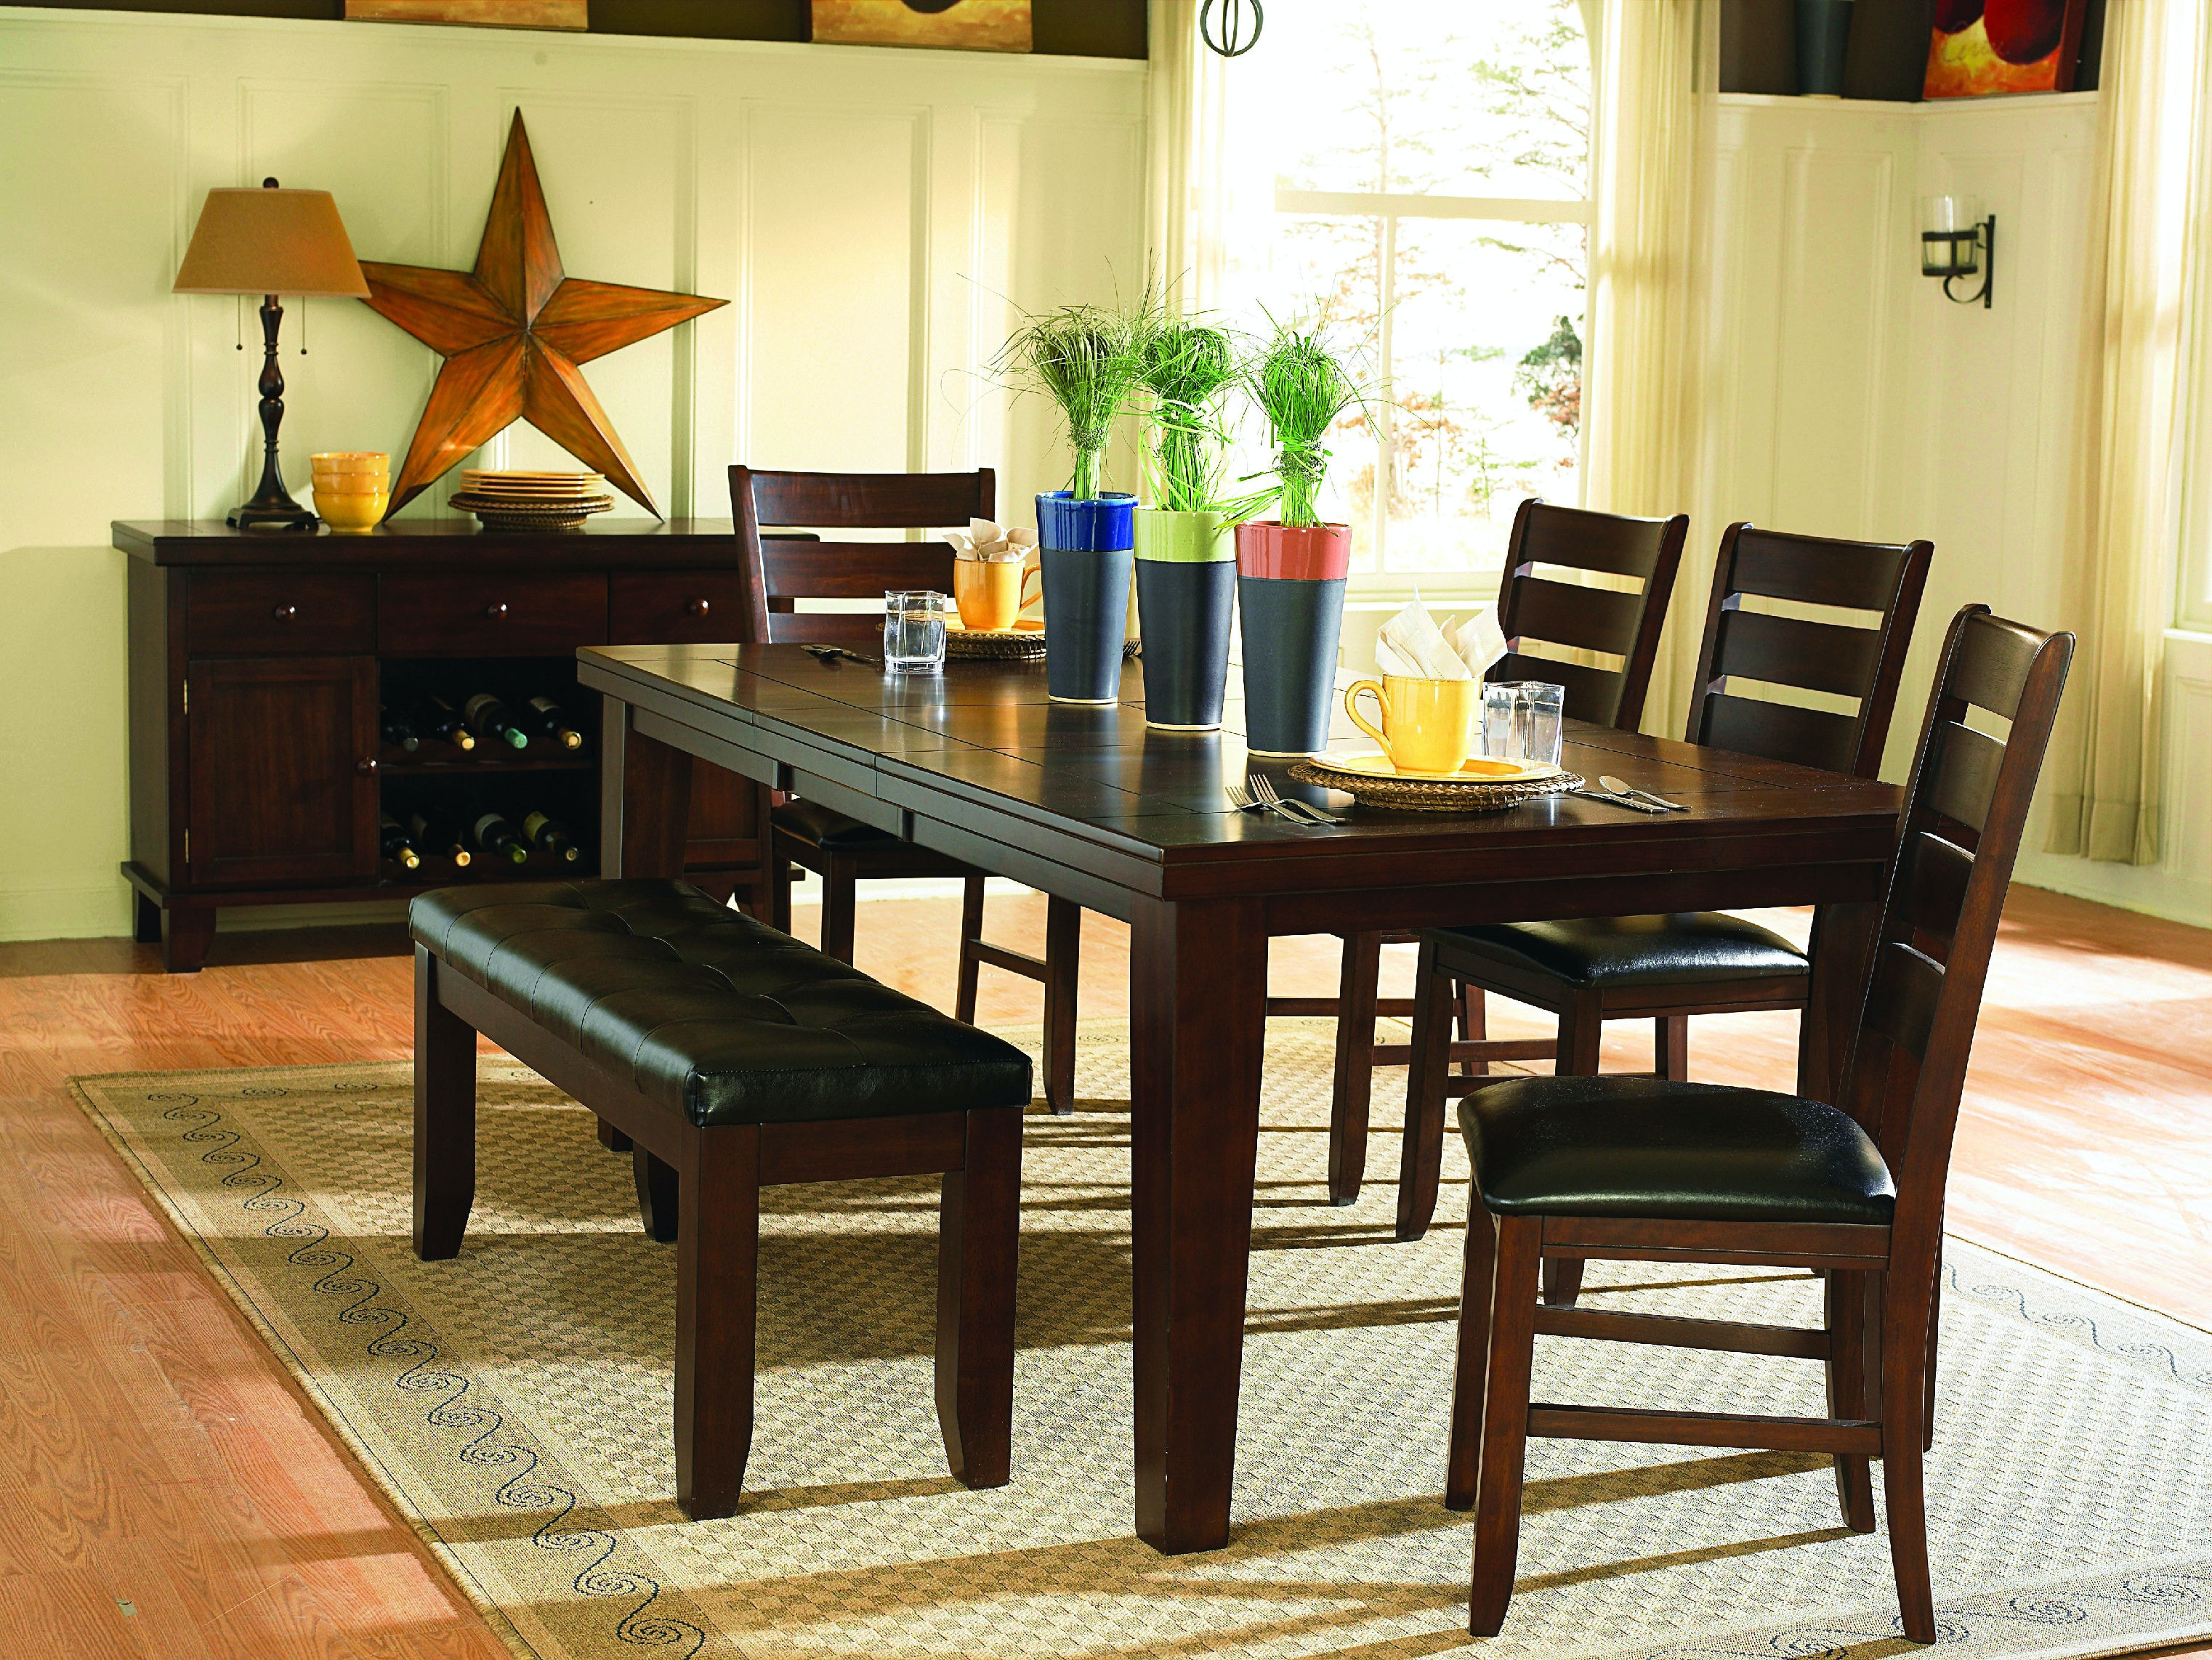 Homelegance Dining Table 586 82